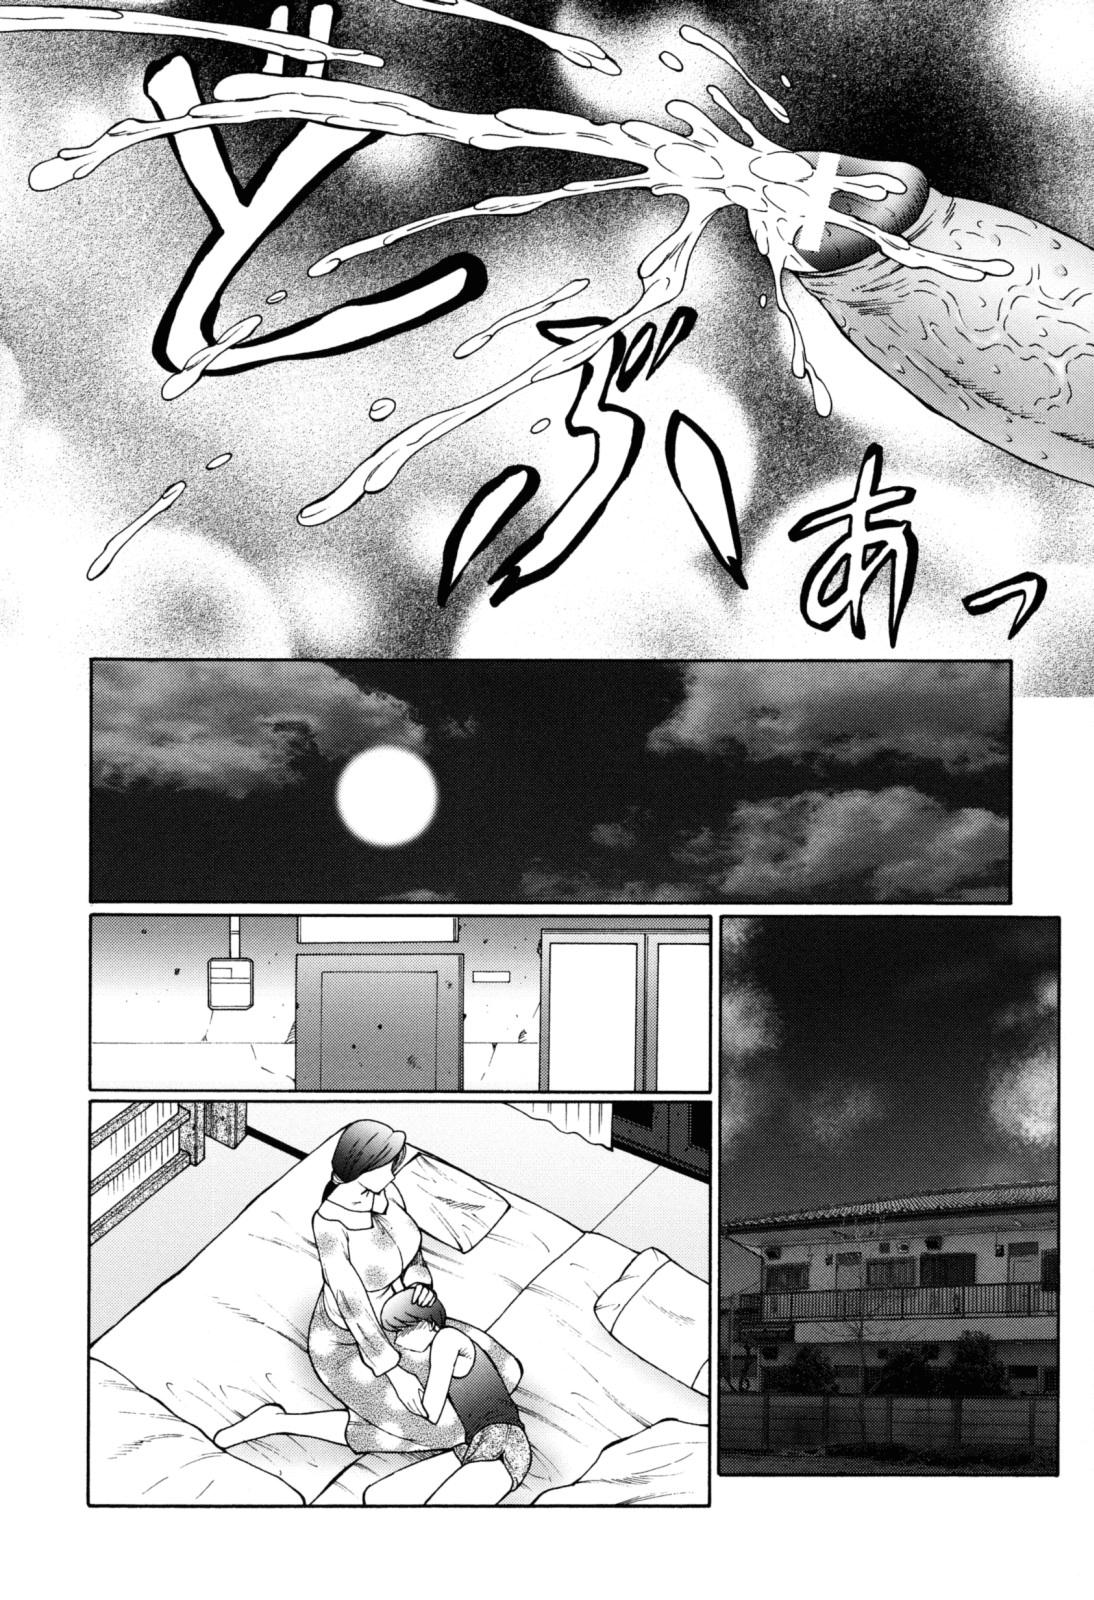 [Fuusen Club] Boshino Toriko - The Captive of Mother and the Son | Enslaved Mother and Son Ch. 1-5 [English] [SaHa] 29